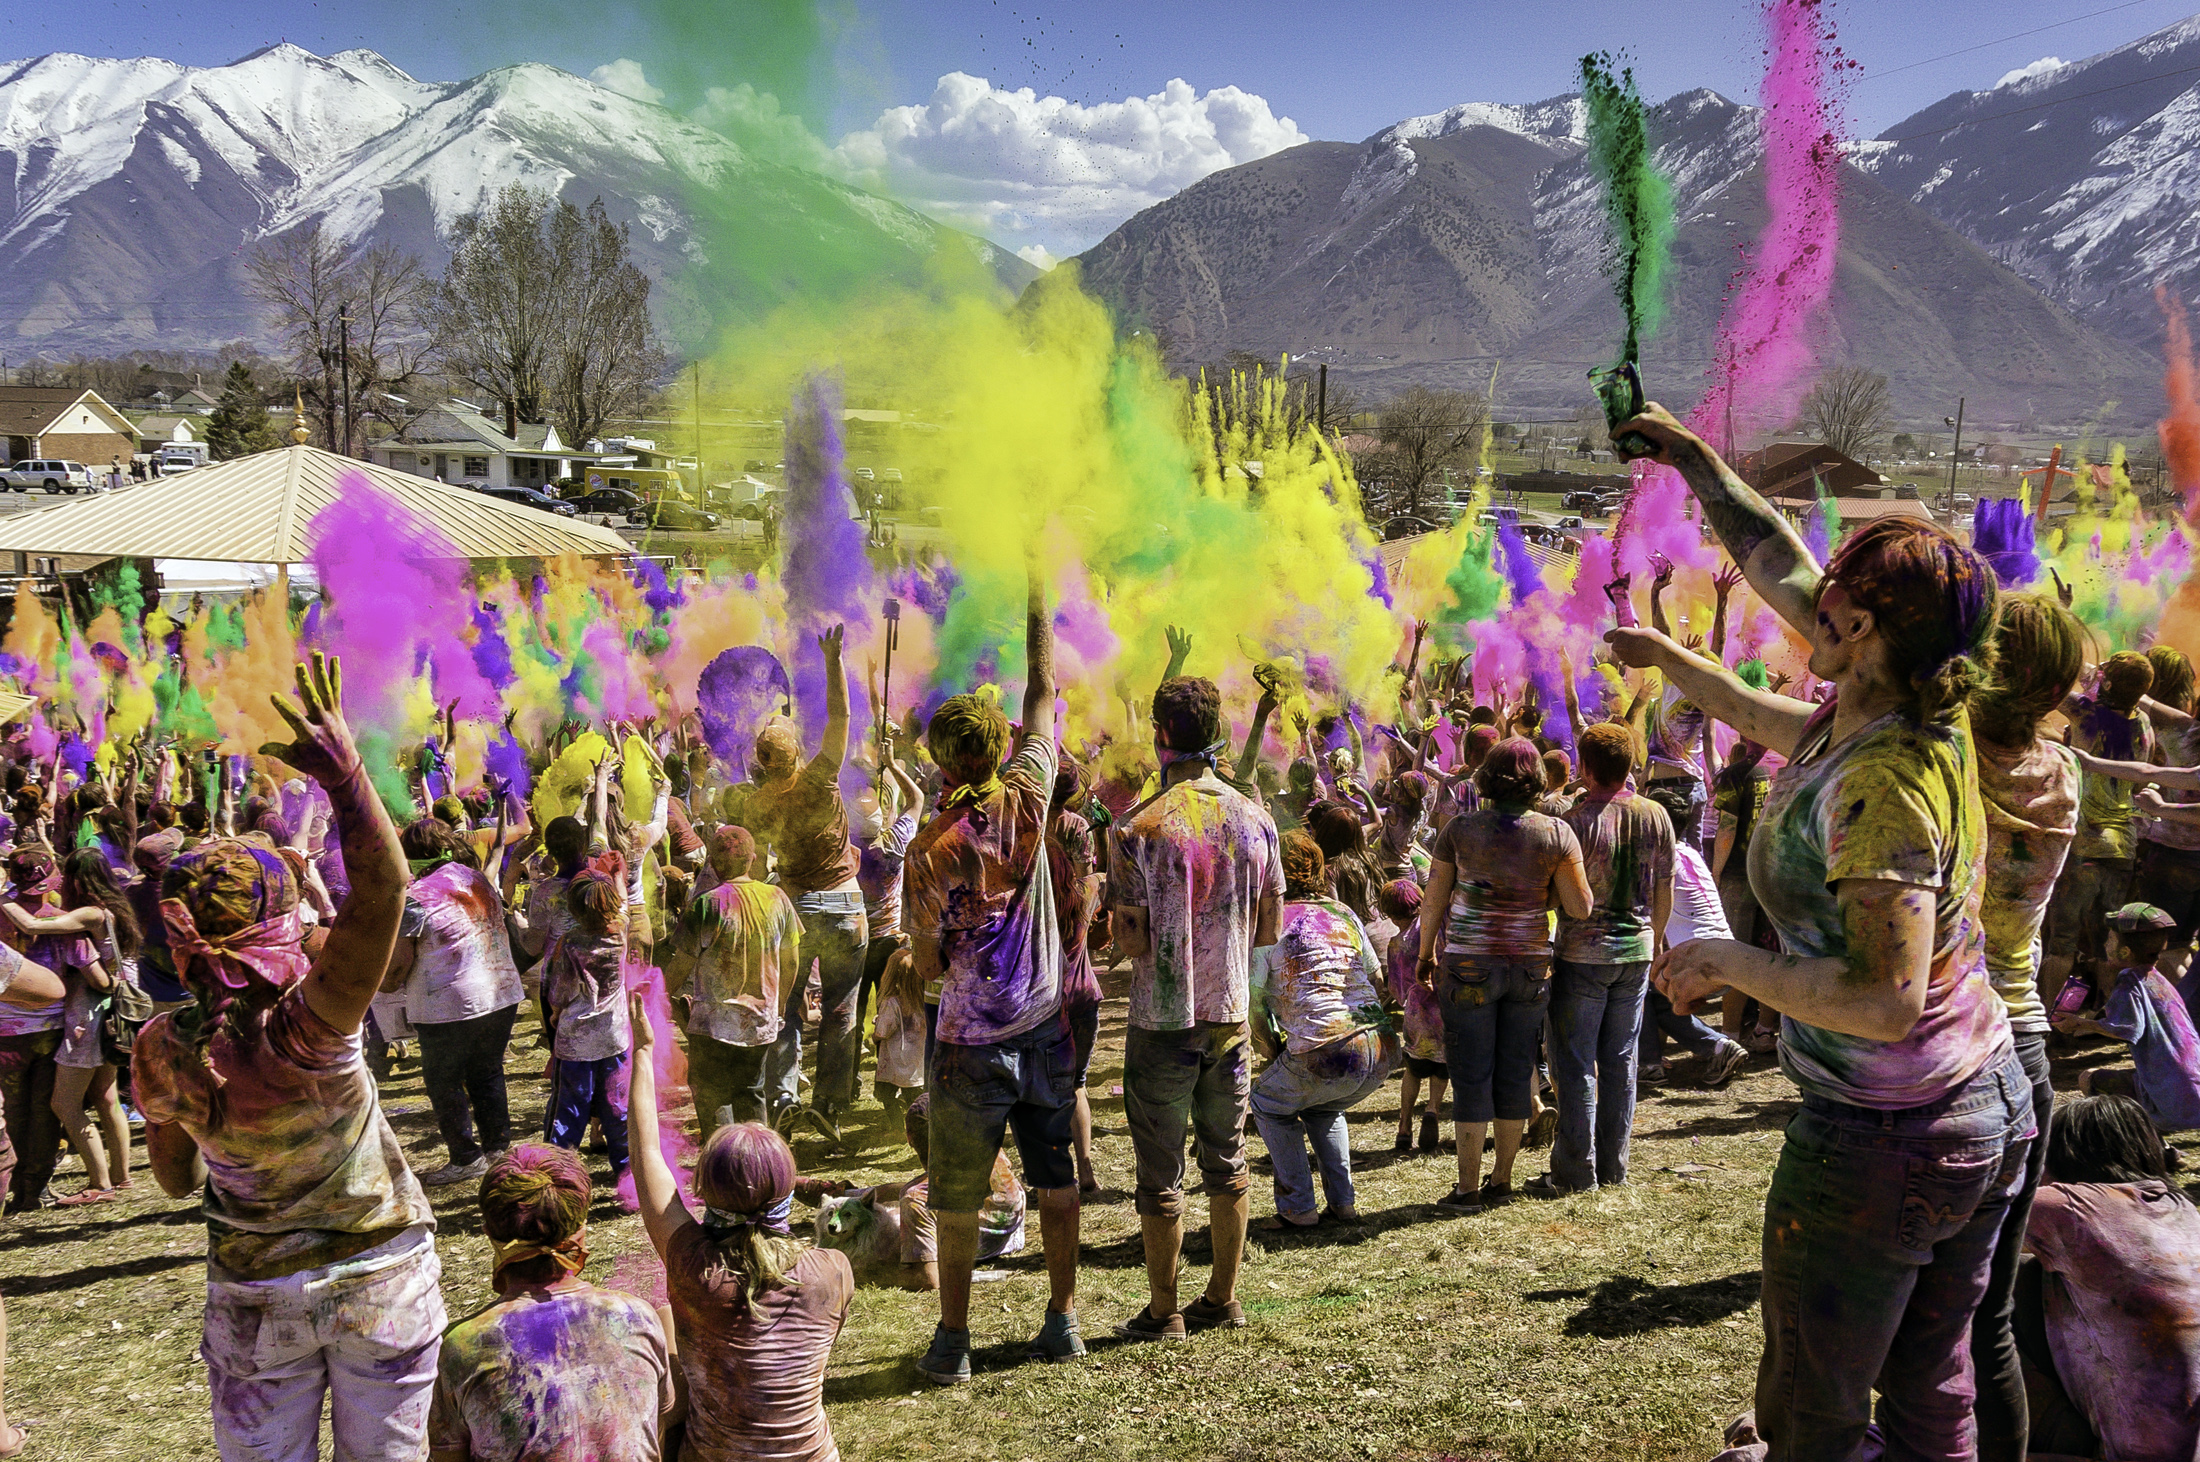 File:A celebration of Holi Festival of Colors, Utah United States 2013